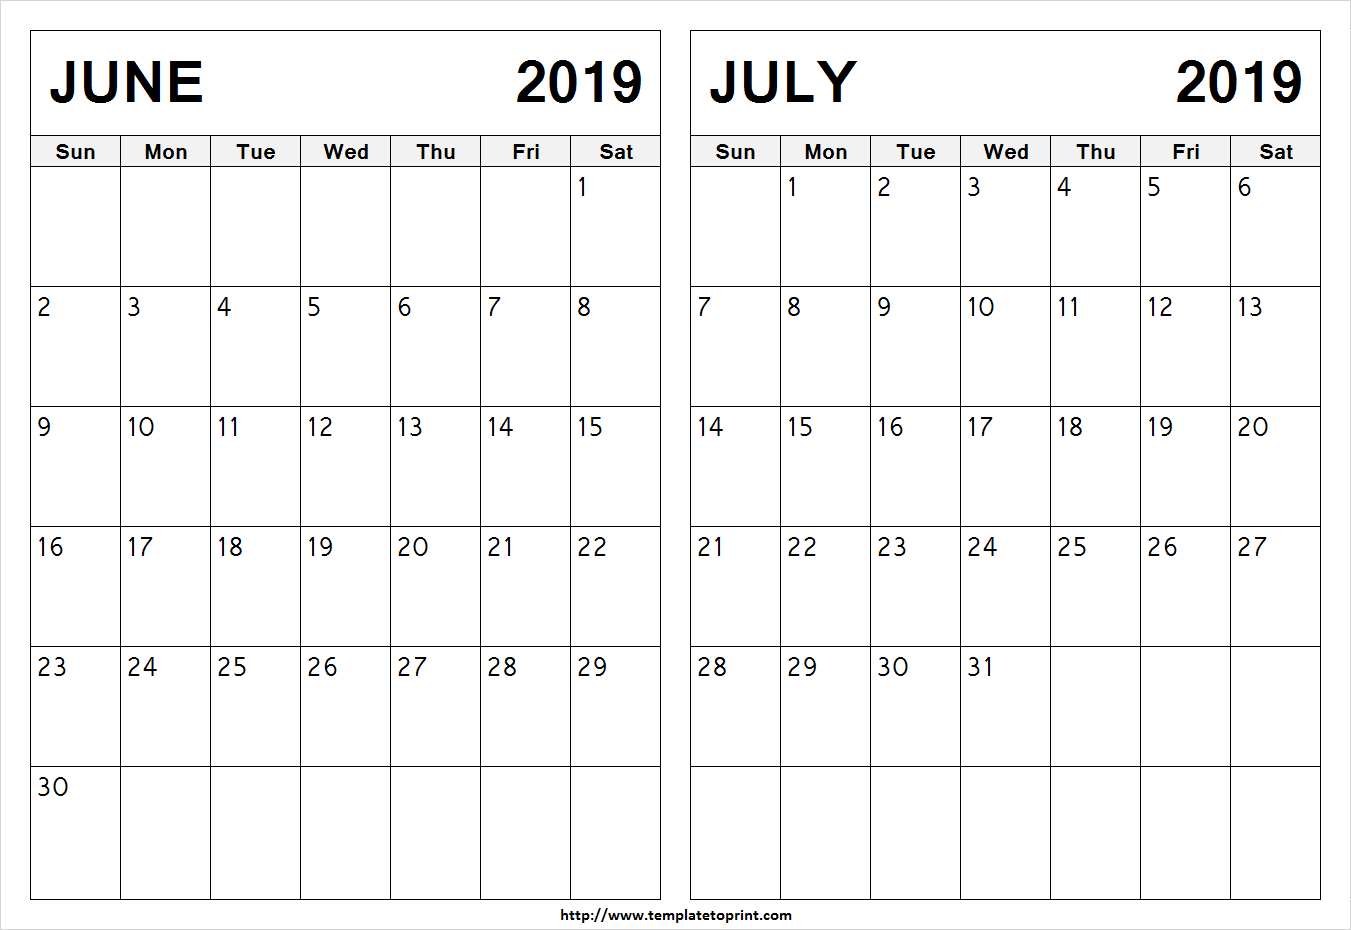 Blank June July 2019 Calendar Template | Latest 2 Month Calendar Design Calendar 2019 June July